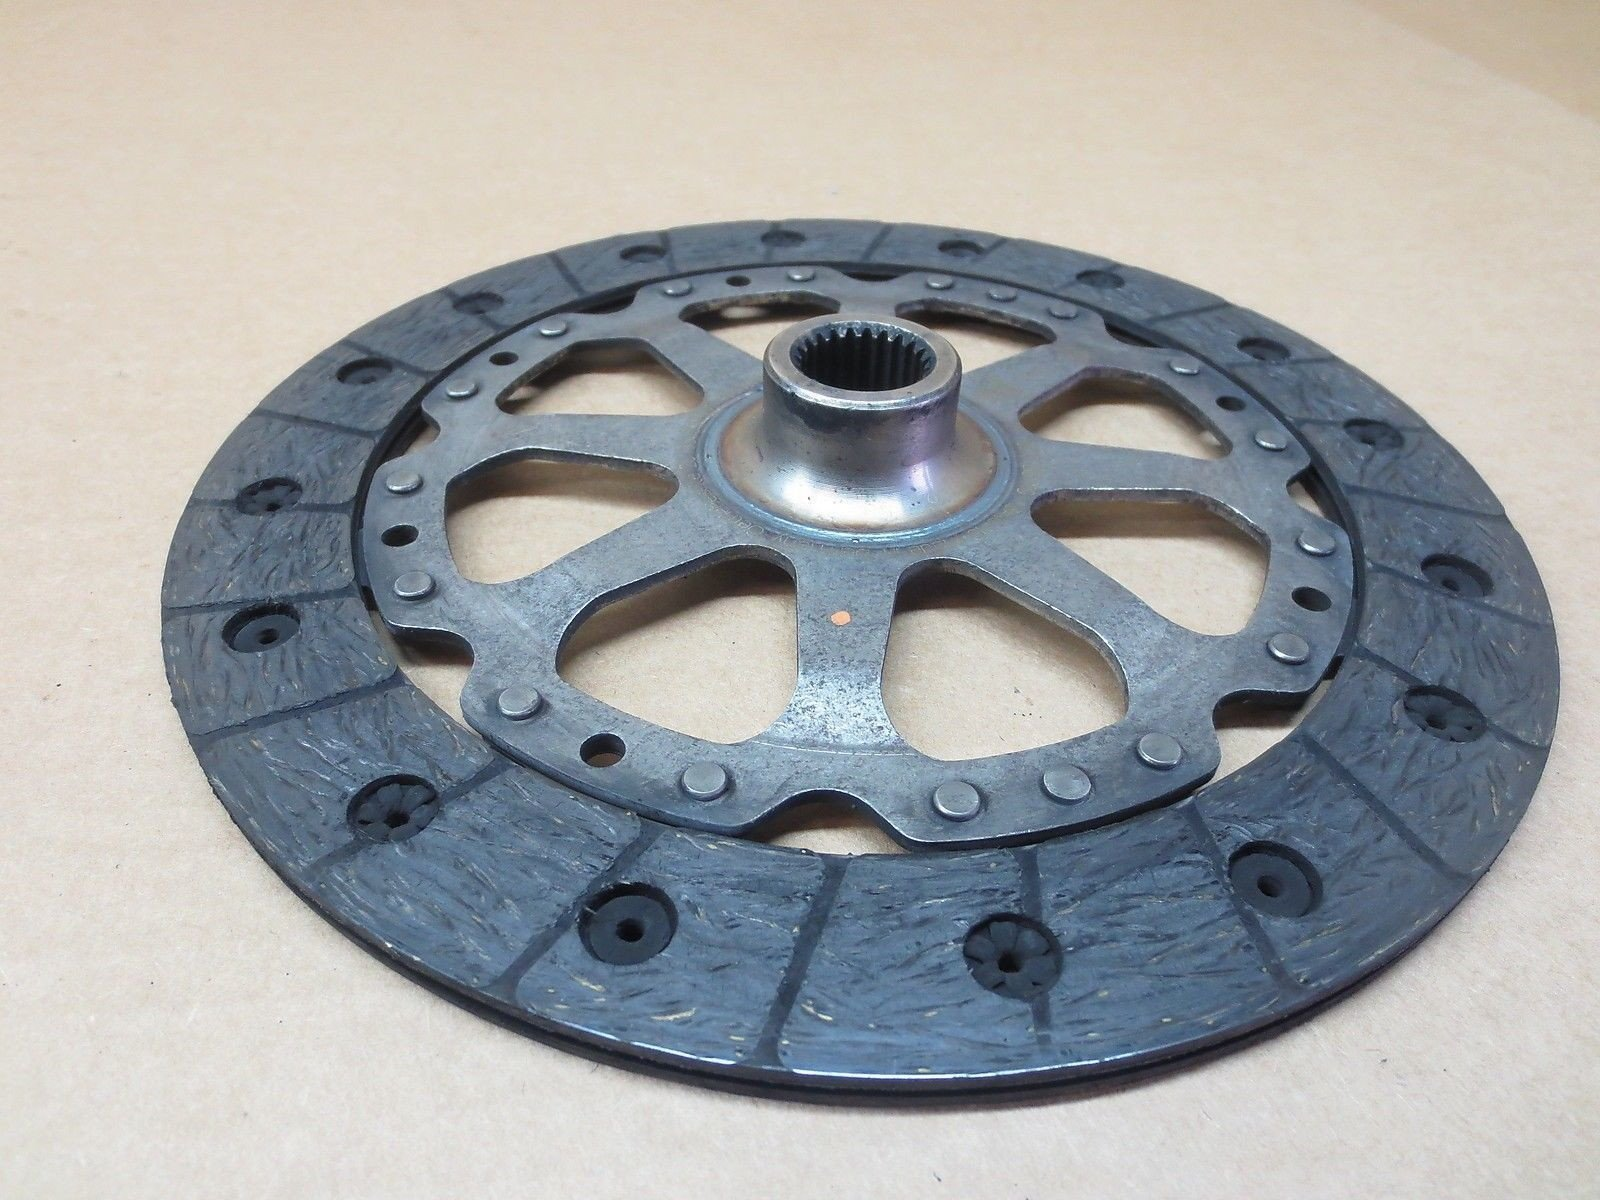 05 Porsche 987 BOXSTER CLUTCH PRESSURE PLATE + DISC 6 speed 42,019